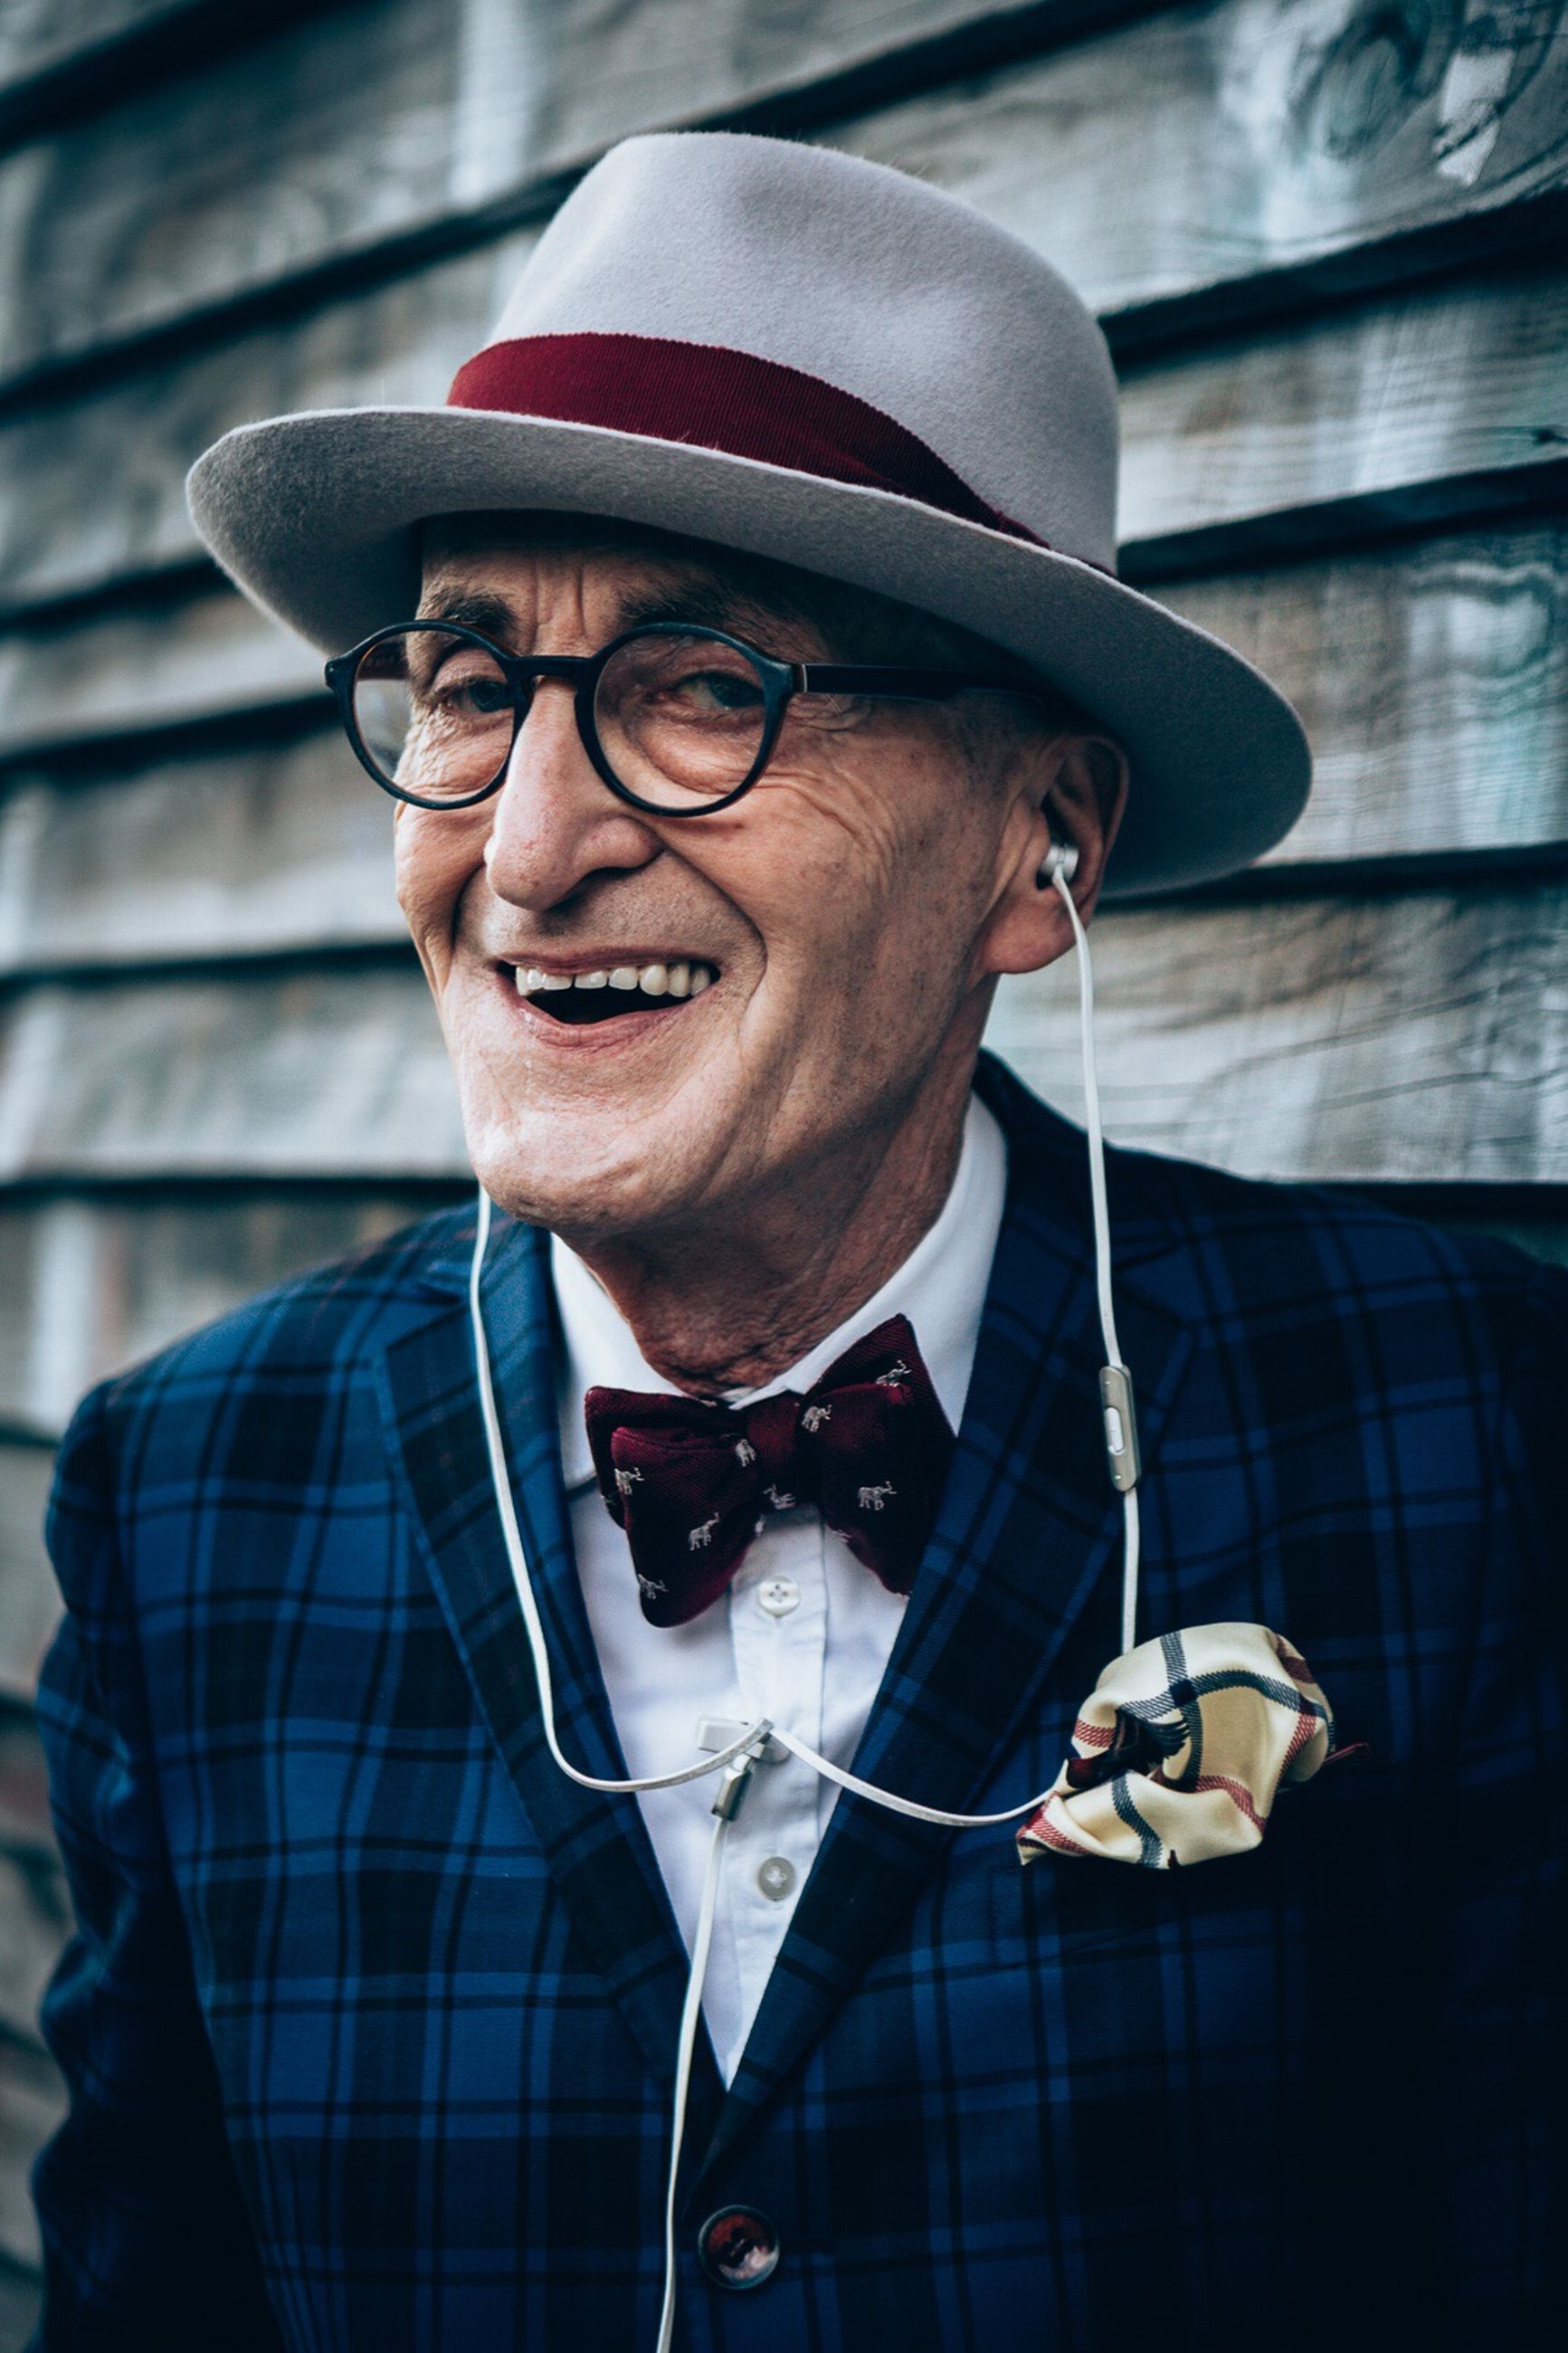 hat, real people, lifestyles, eyeglasses, one person, outdoors, portrait, smiling, day, happiness